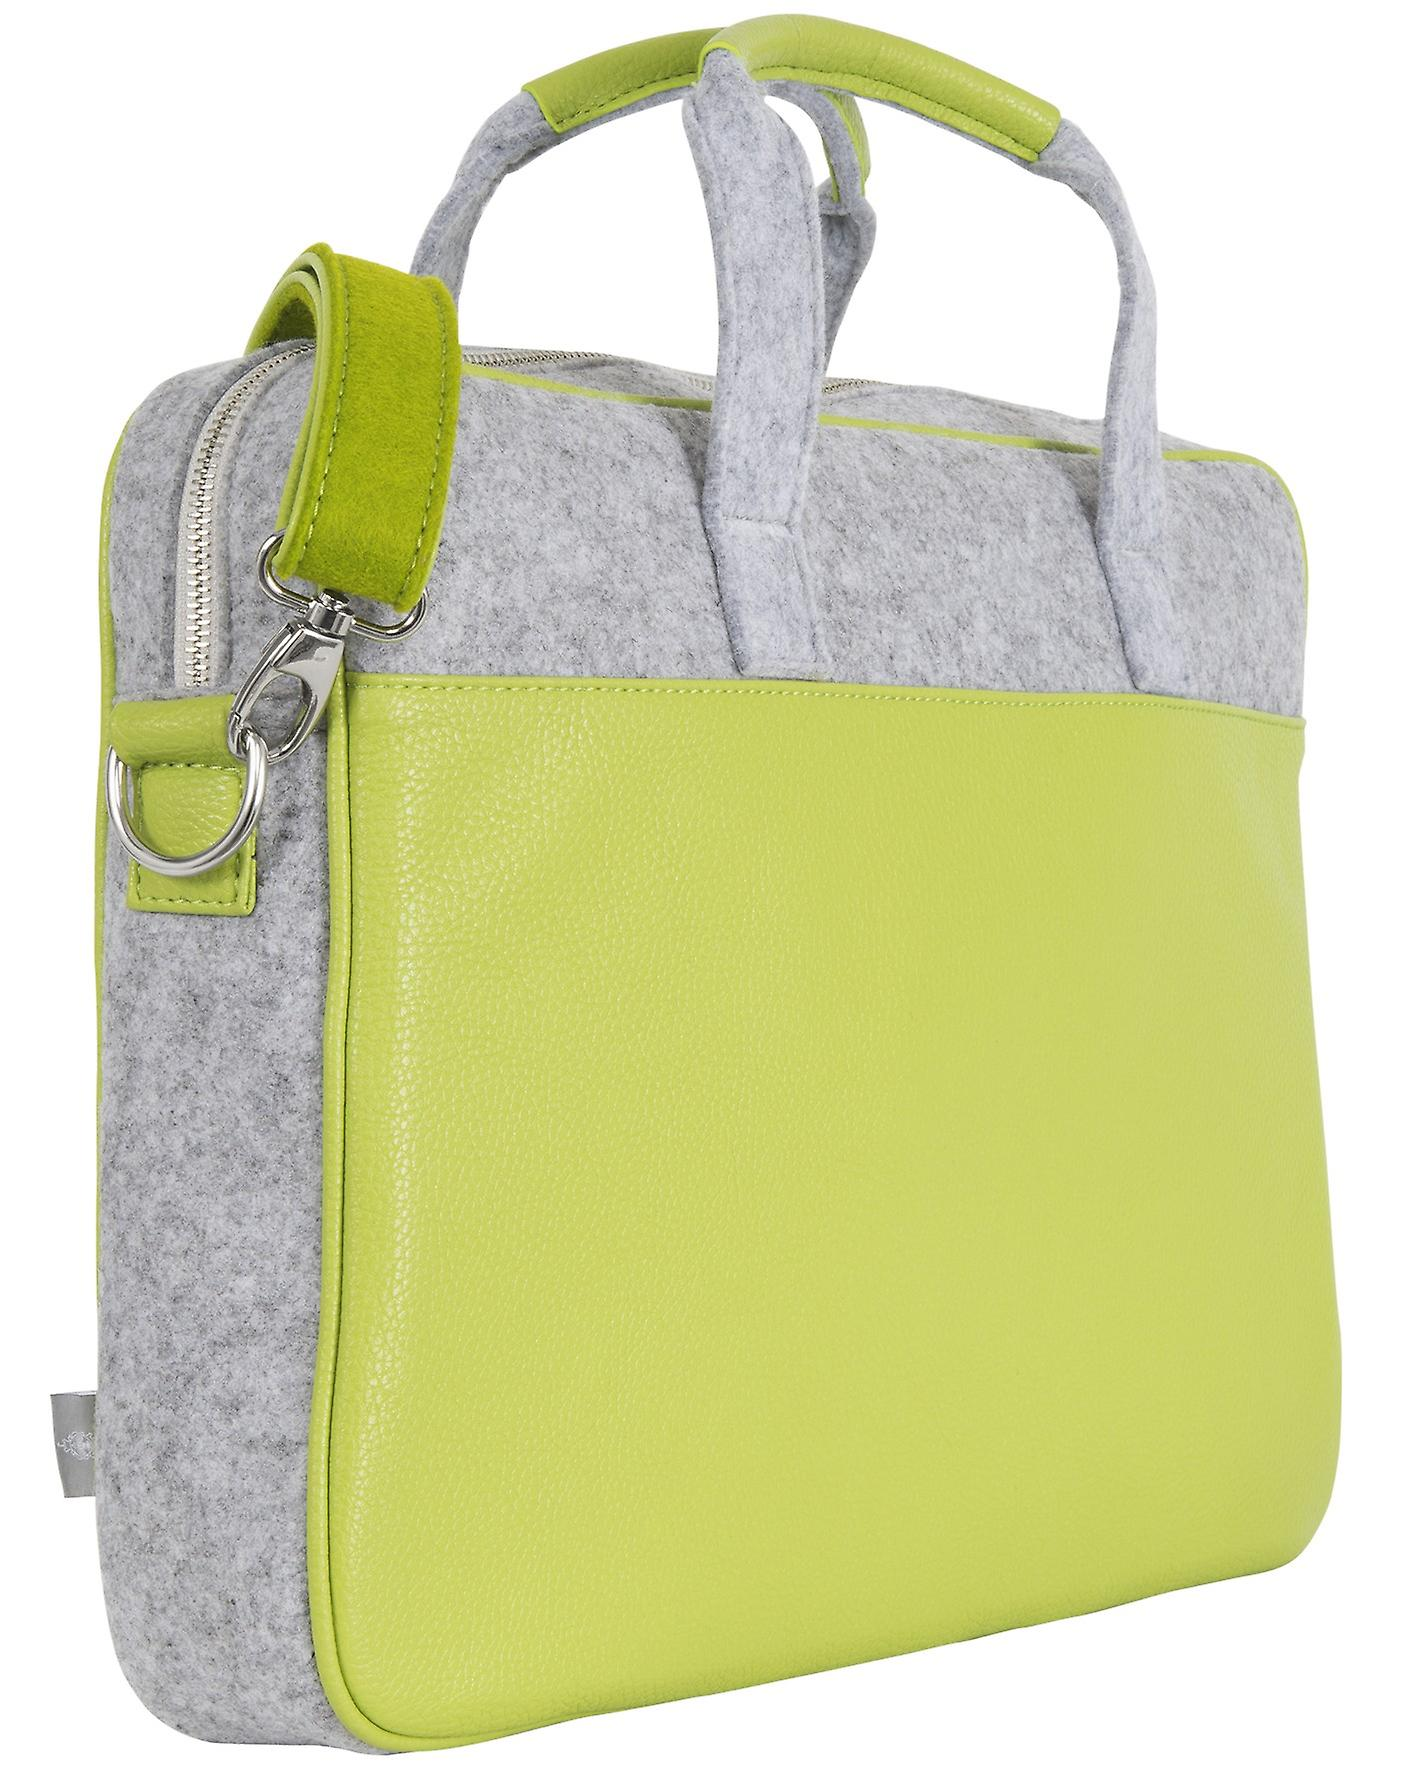 Burgmeister ladies/gents laptop bag  felt, TBM3028-468